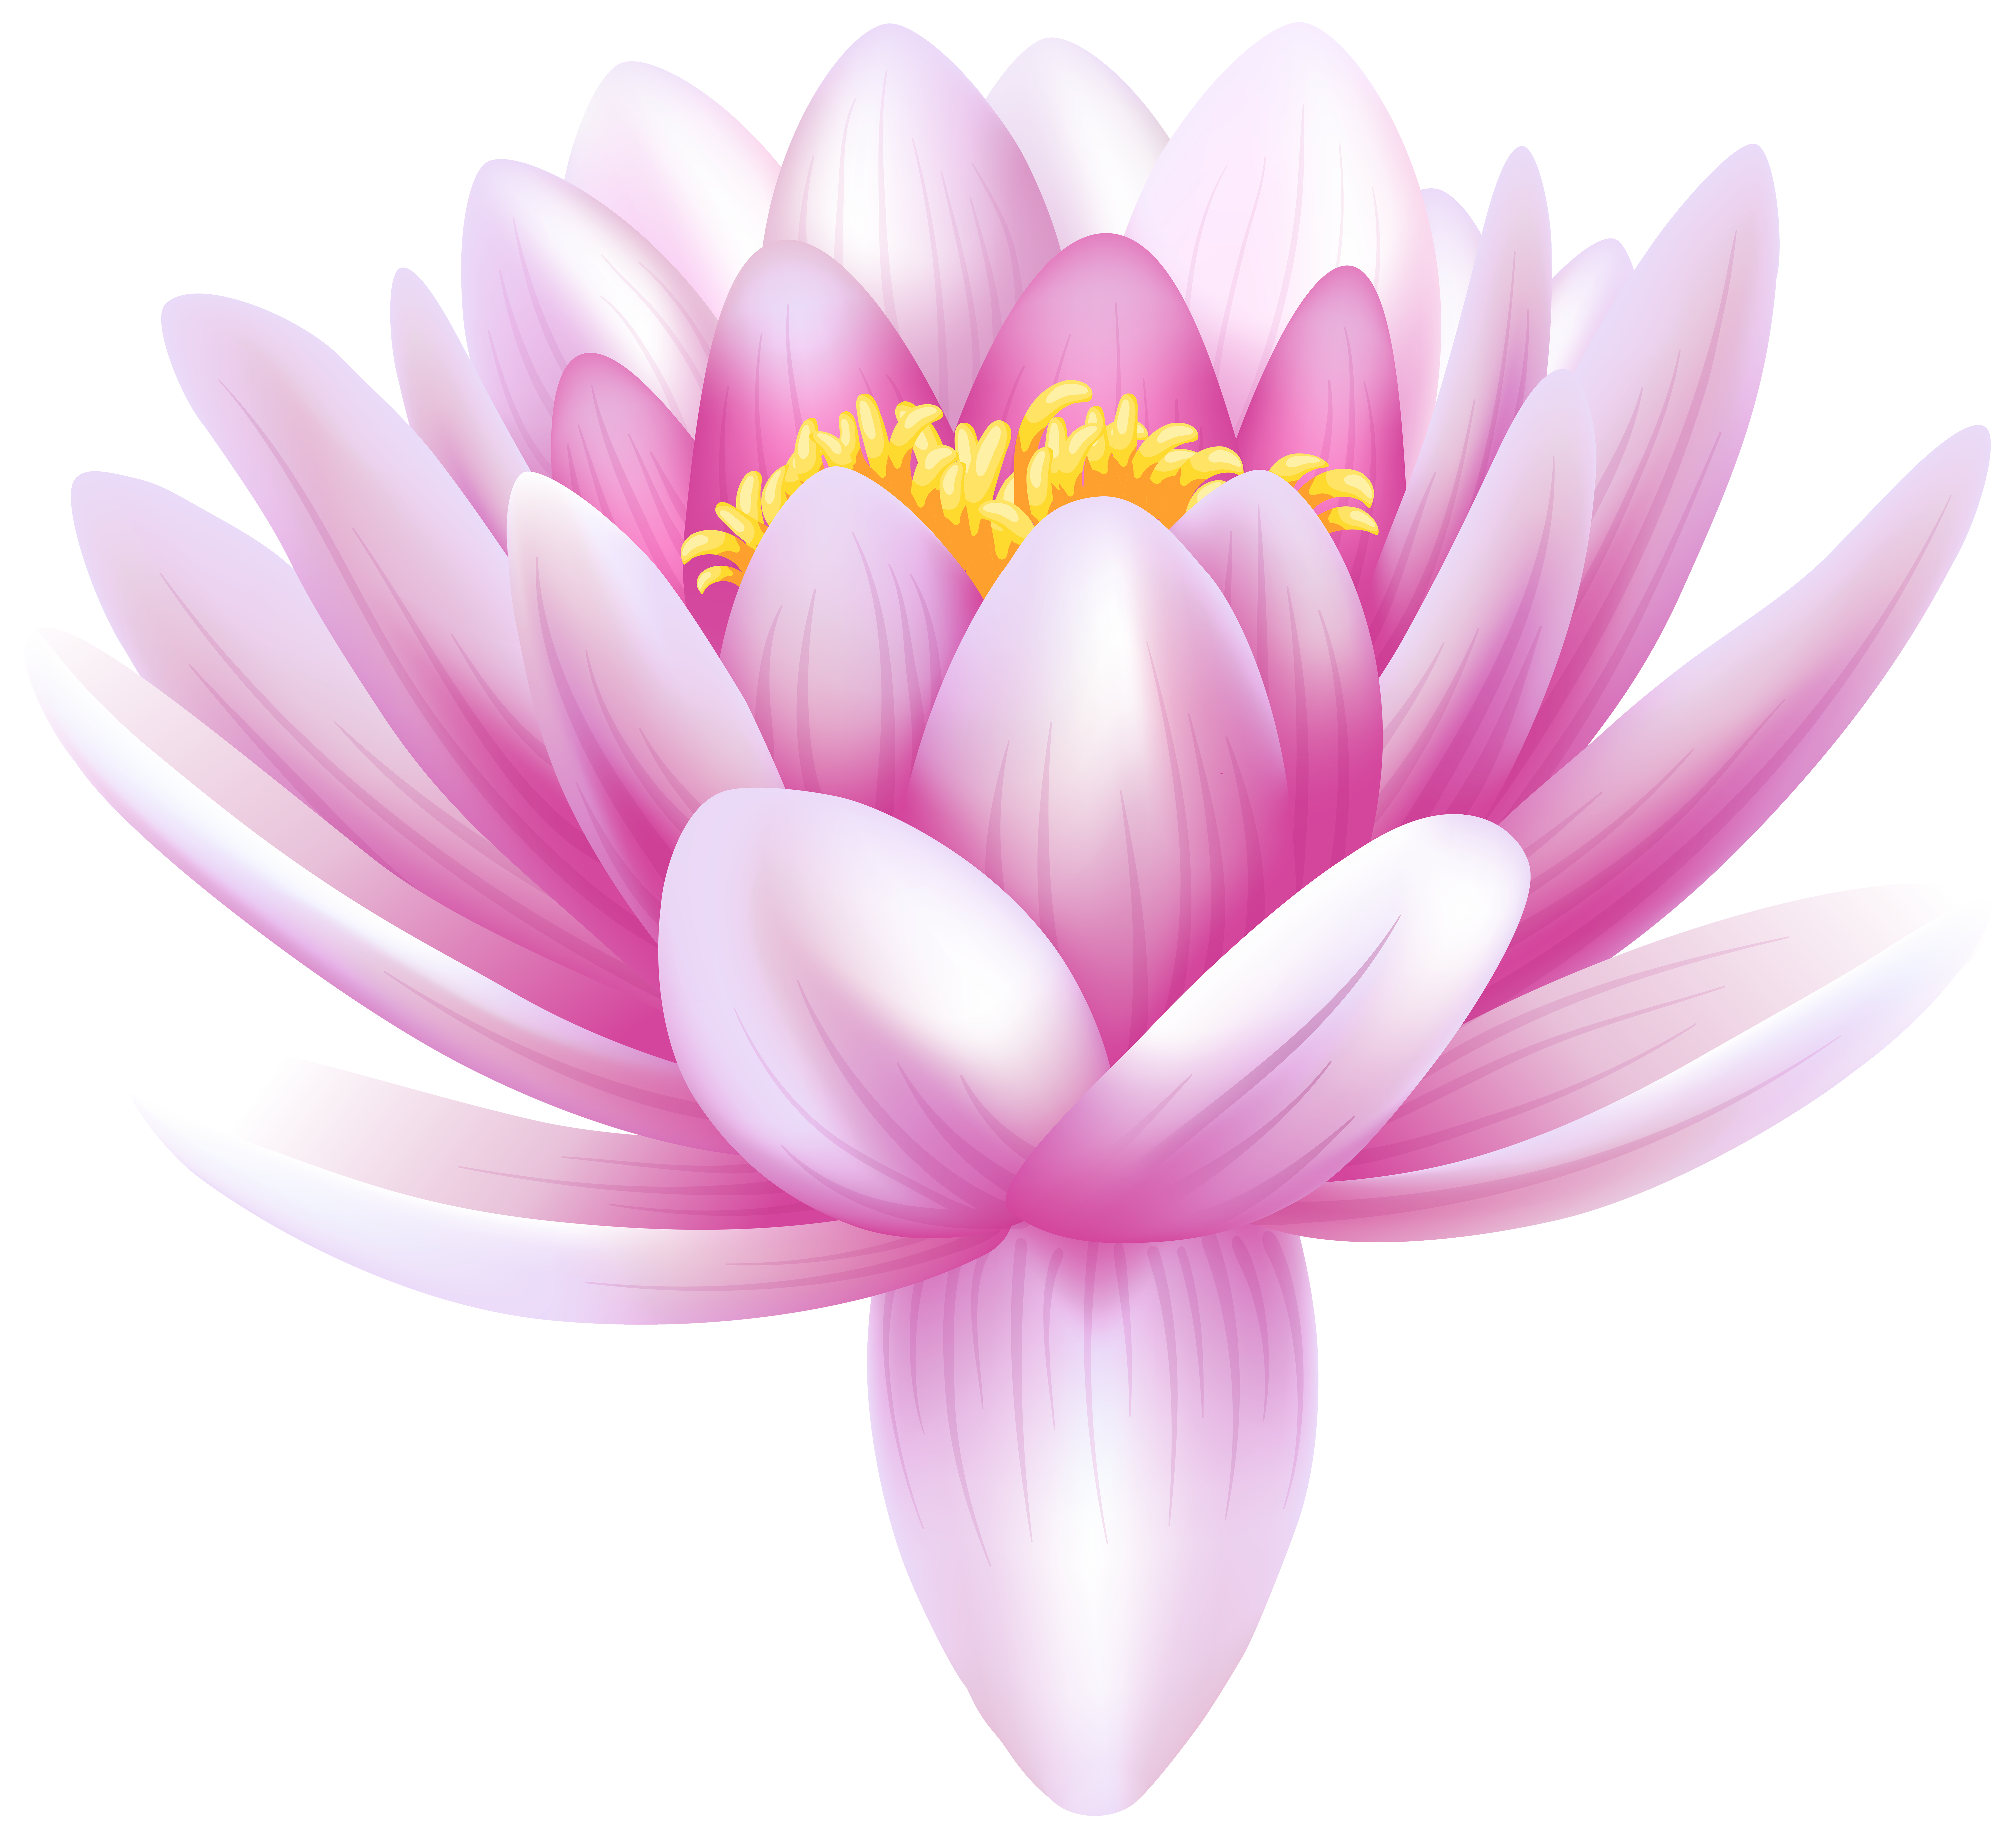 Download Lily Free Png Transparent Image And Clipart